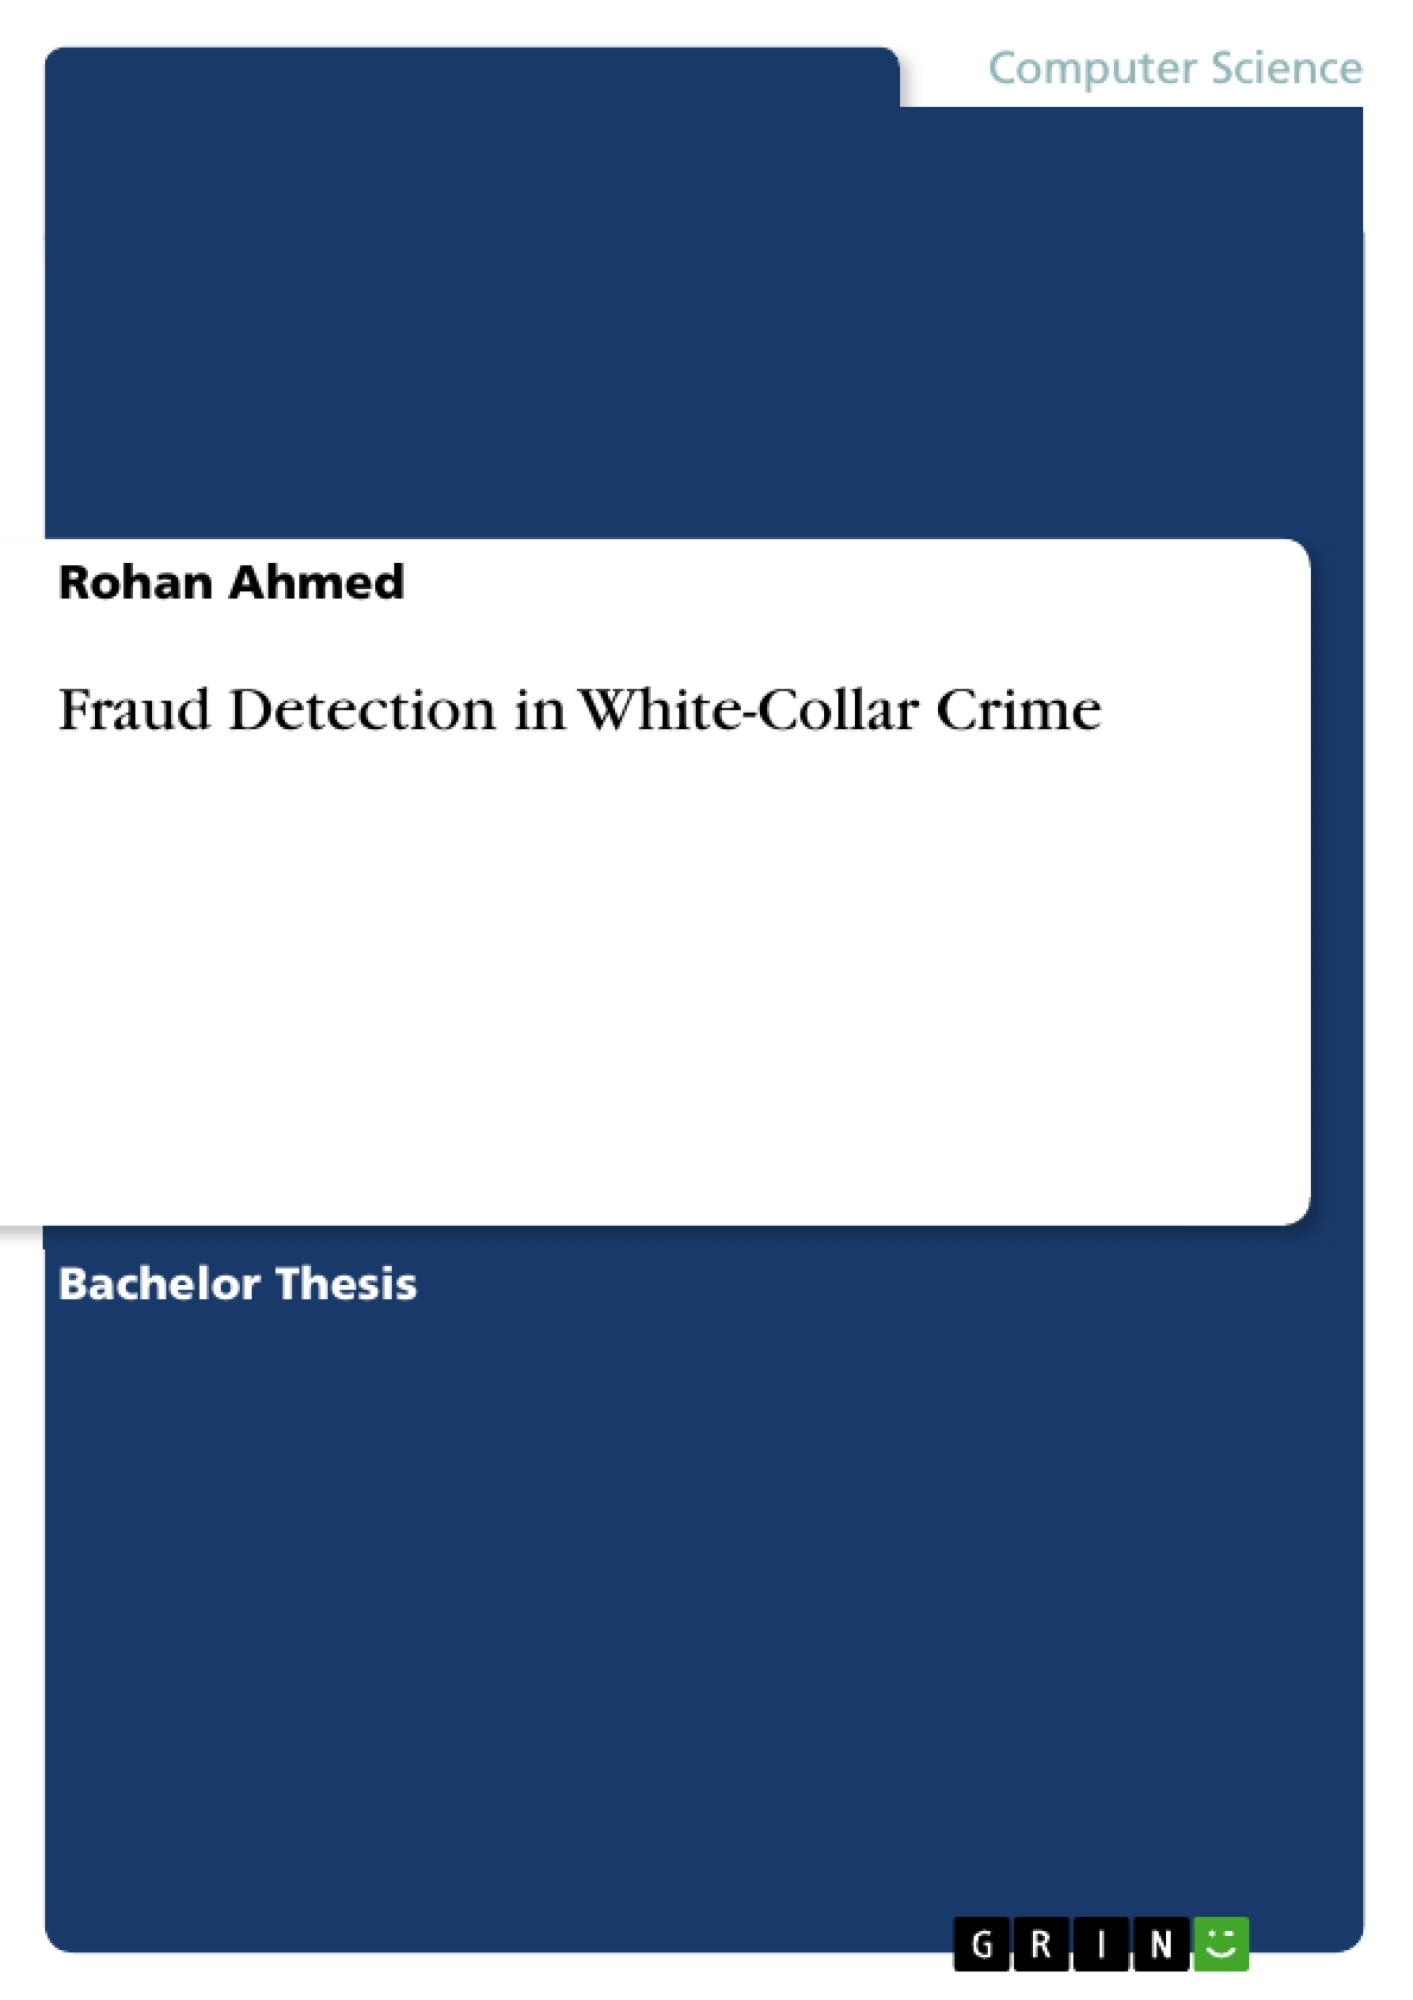 GRIN - Fraud Detection in White-Collar Crime